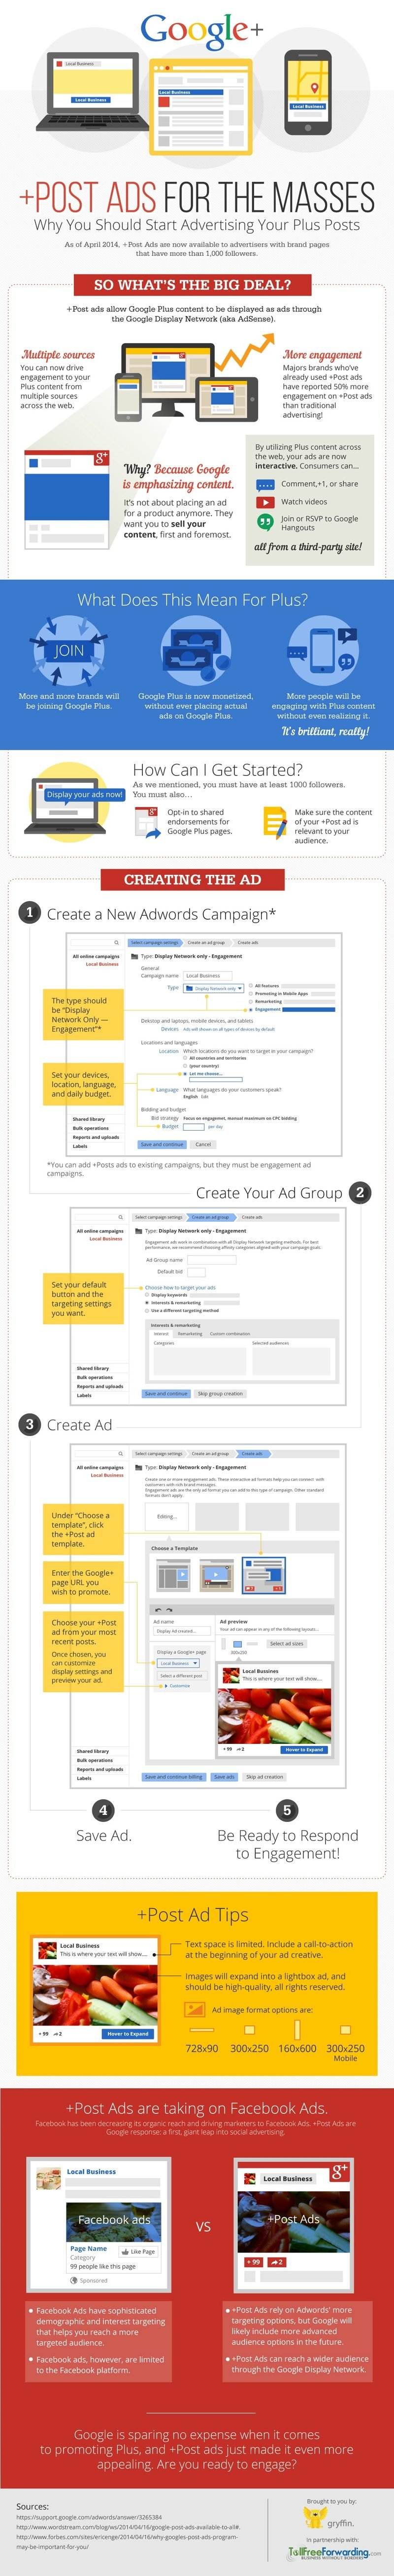 Why And How Should You Start Advertising On Google+ plus? #Infographic